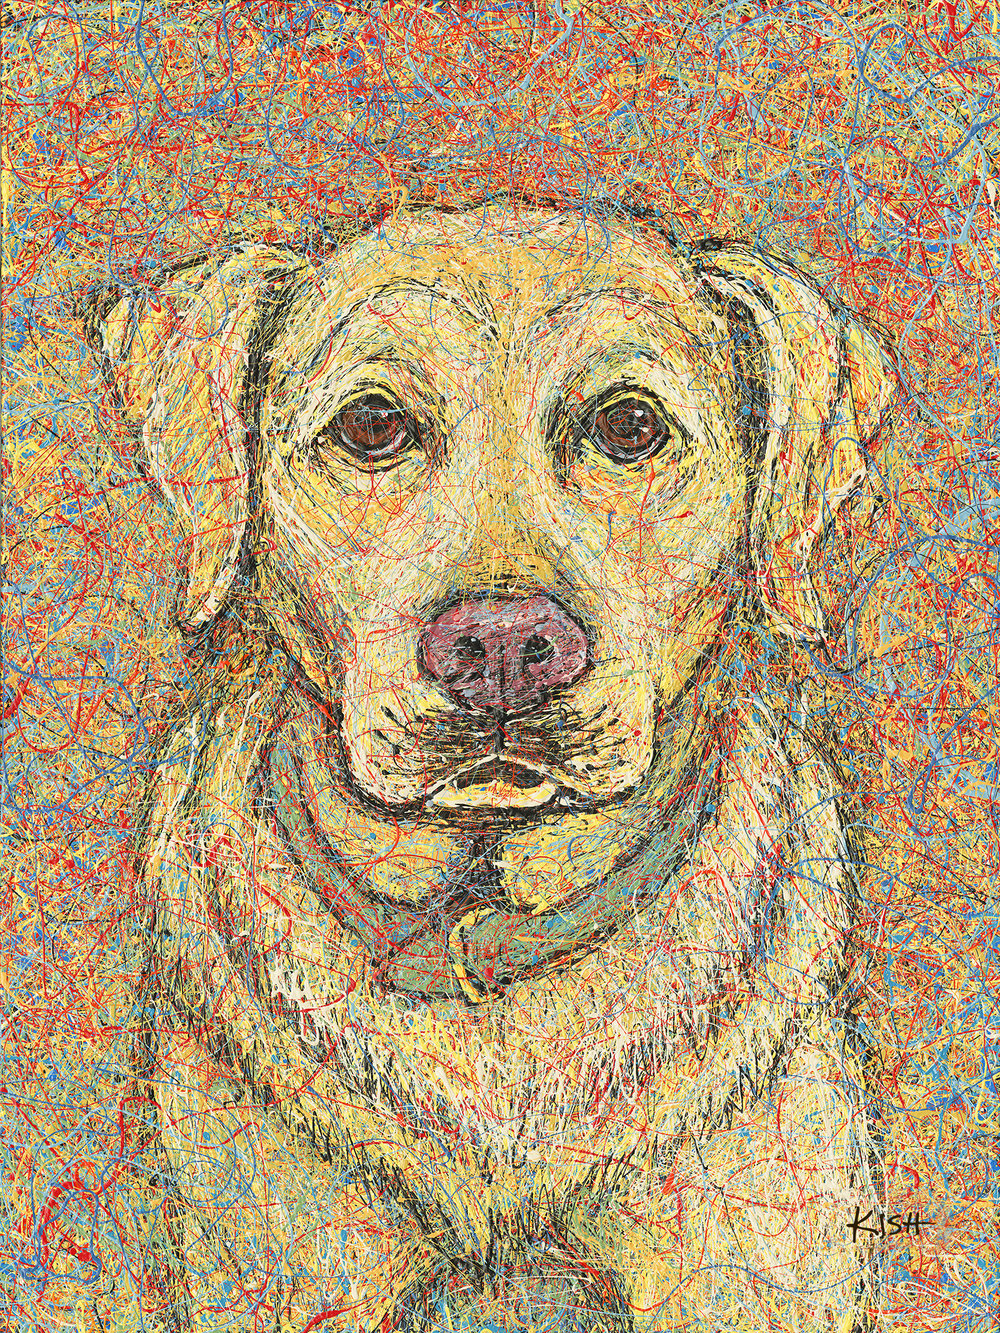 YELLOW LAB  - ORIGINAL ART 30 x 40—SOLDArt Print (giclee)                      16 x 20 ................$125                                               18 x 24 .................$150Canvas Print (giclee)               16 x 20 ................$325                                               30 x 40 ...............$750